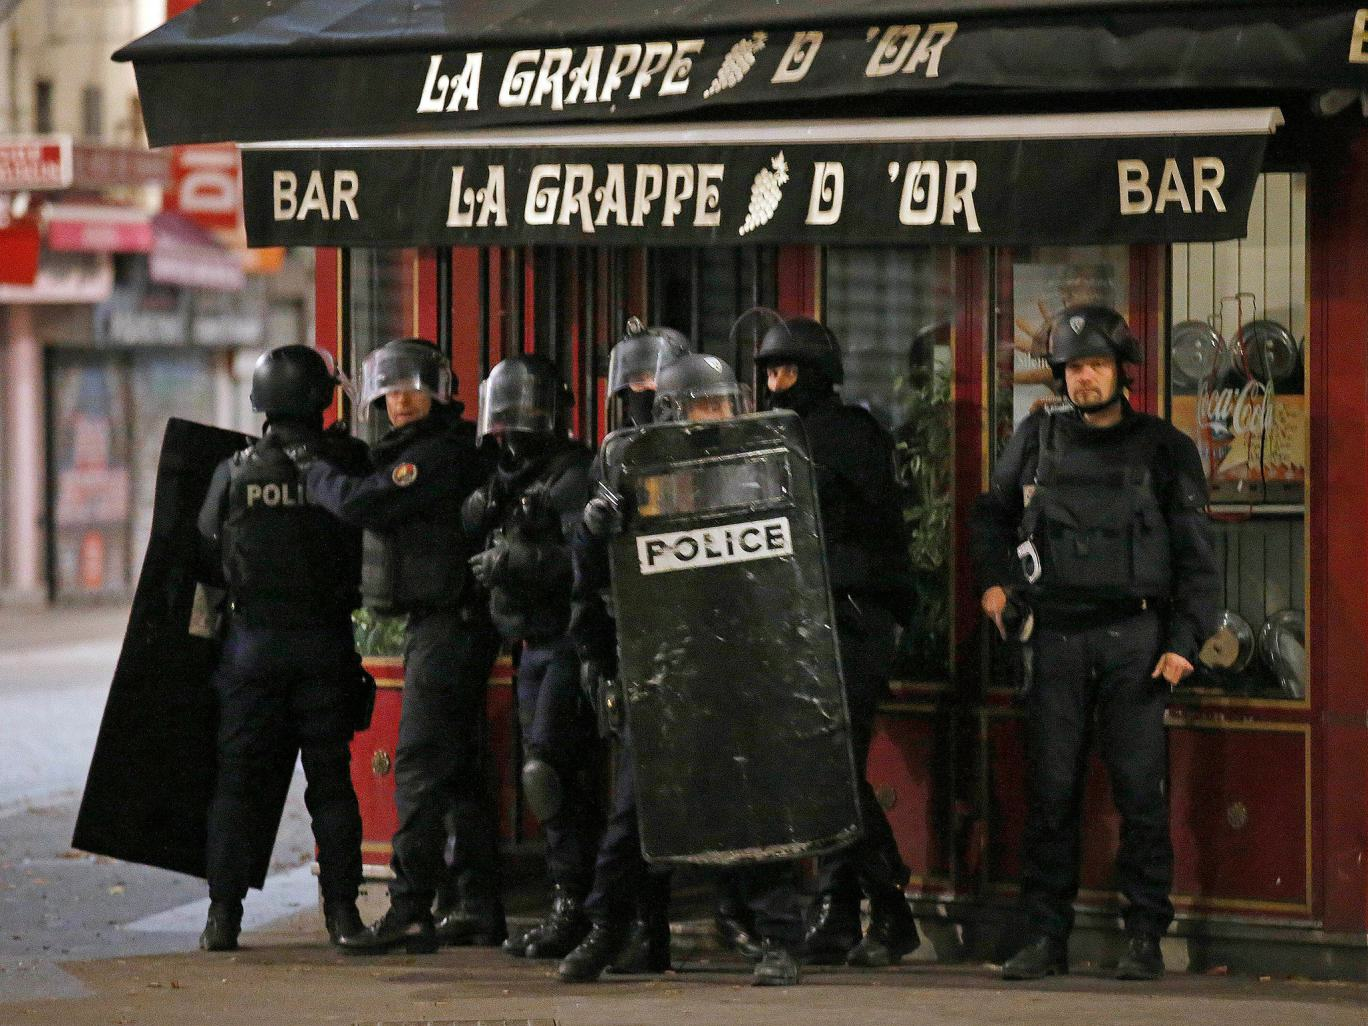 UNILAD Saint Denis raid 56200 St Denis Raids Just In Time To Prevent Operation By Terrorists